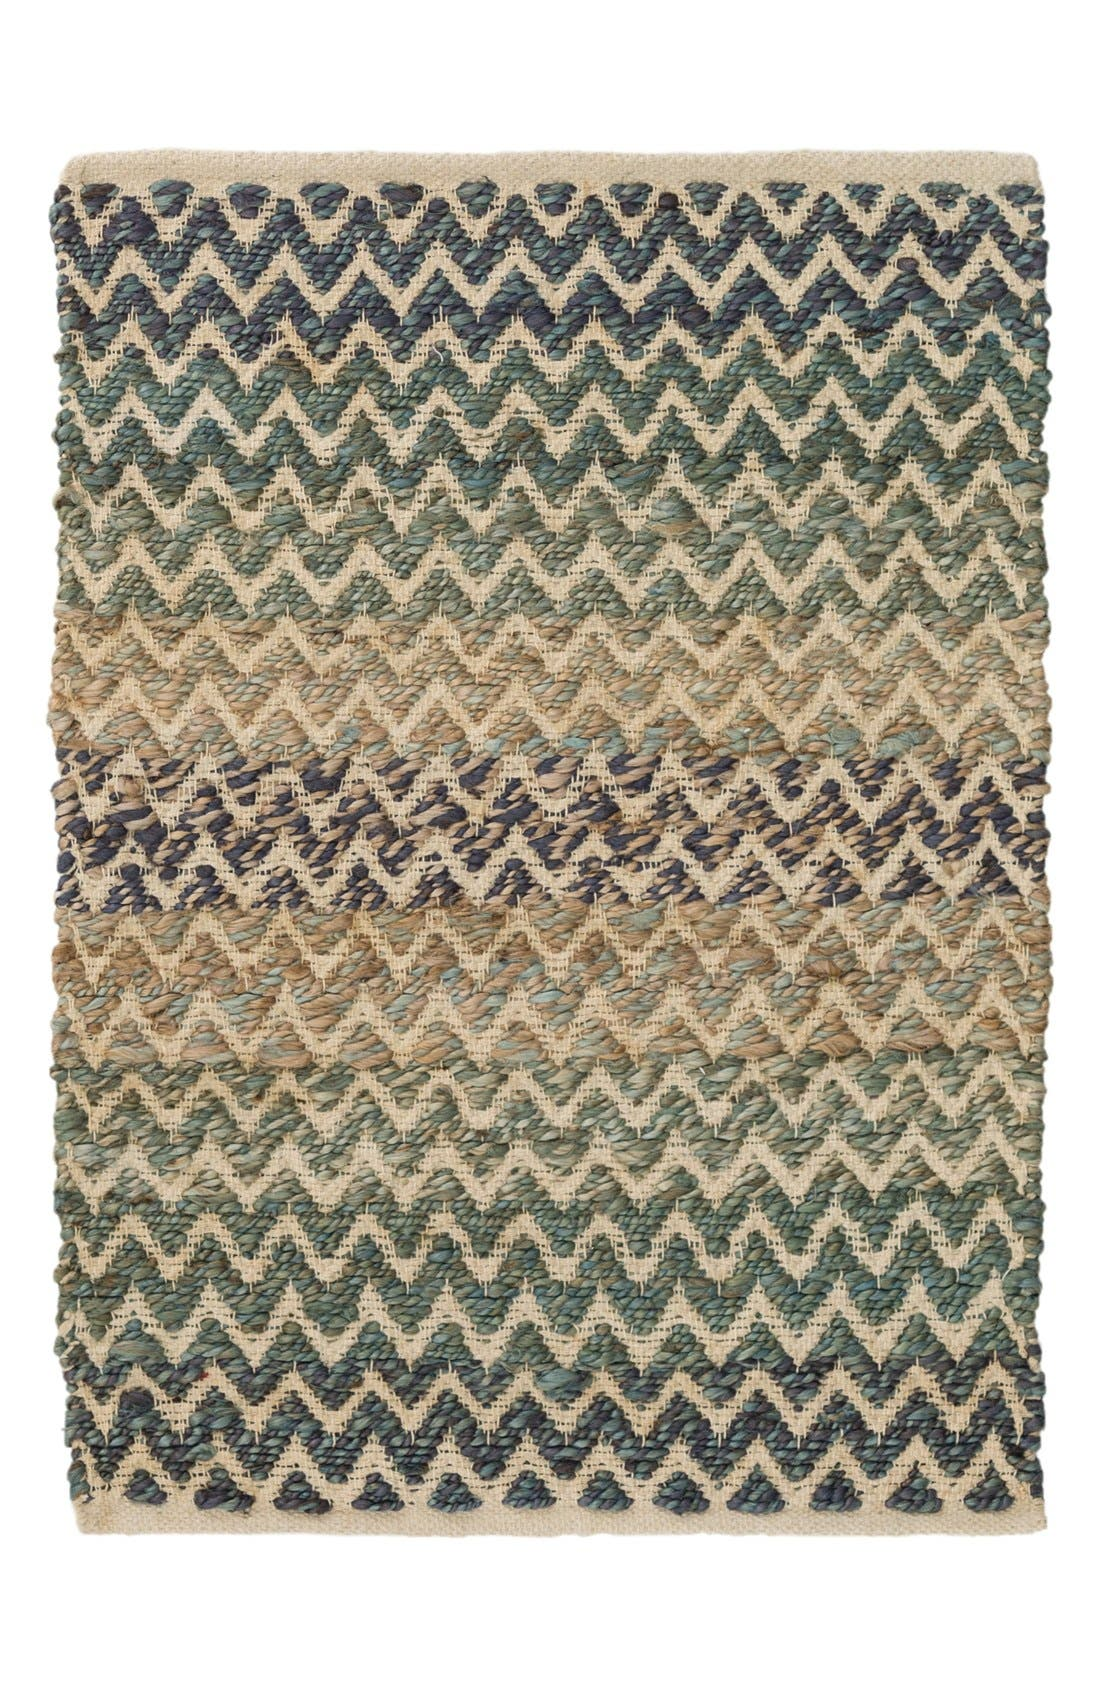 Main Image - Dash & Albert Cousteau Handwoven Rug